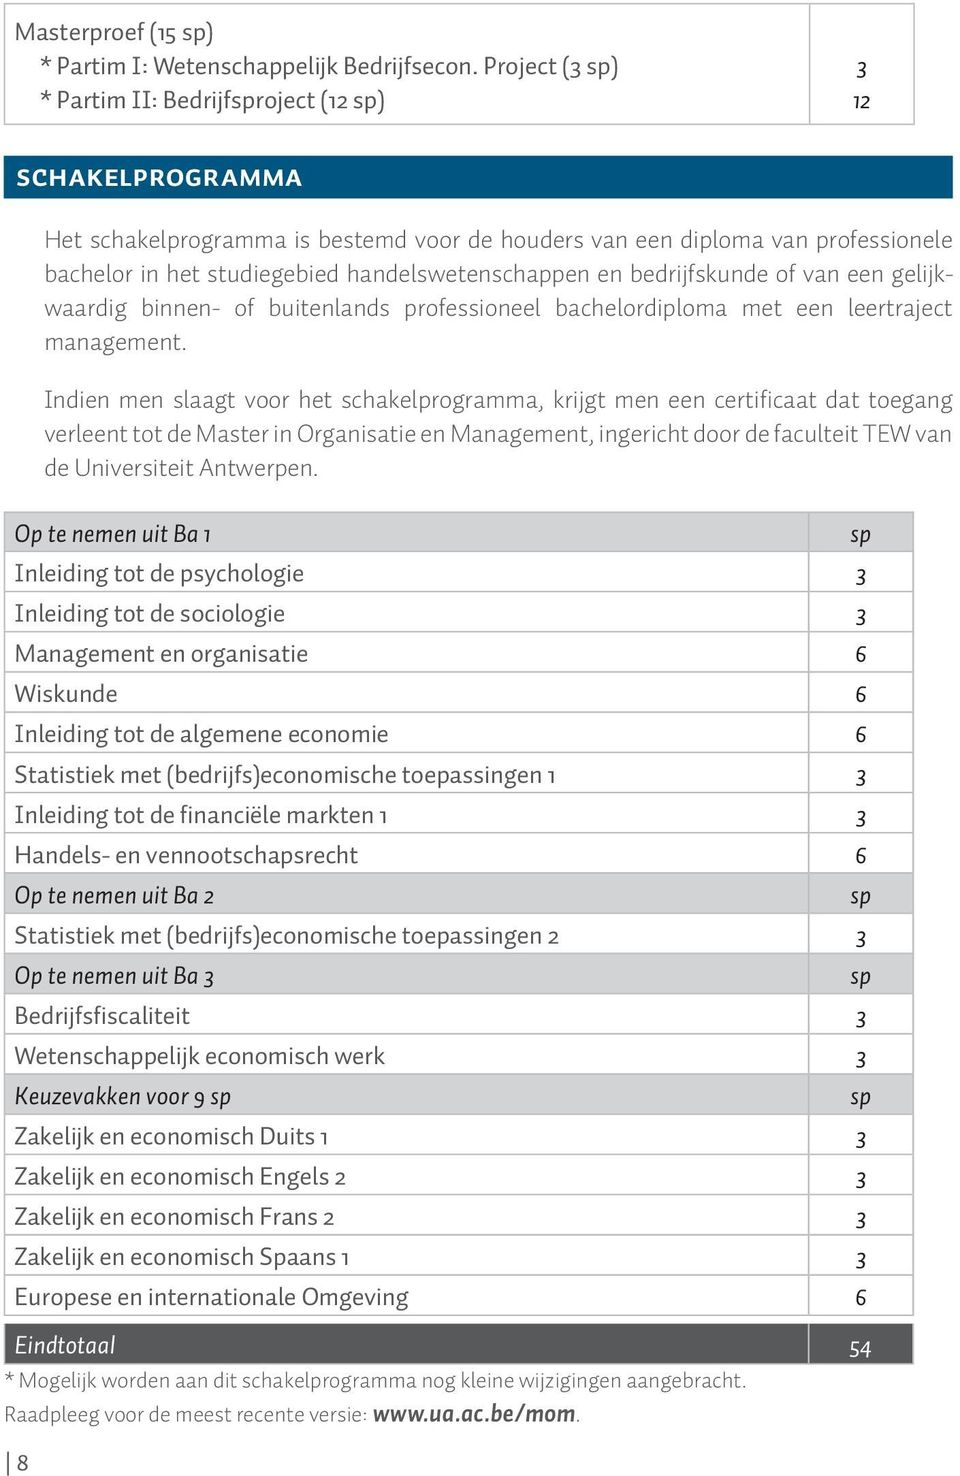 handelswetenschappen en bedrijfskunde of van een gelijkwaardig binnen- of buitenlands professioneel bachelordiploma met een leertraject management.